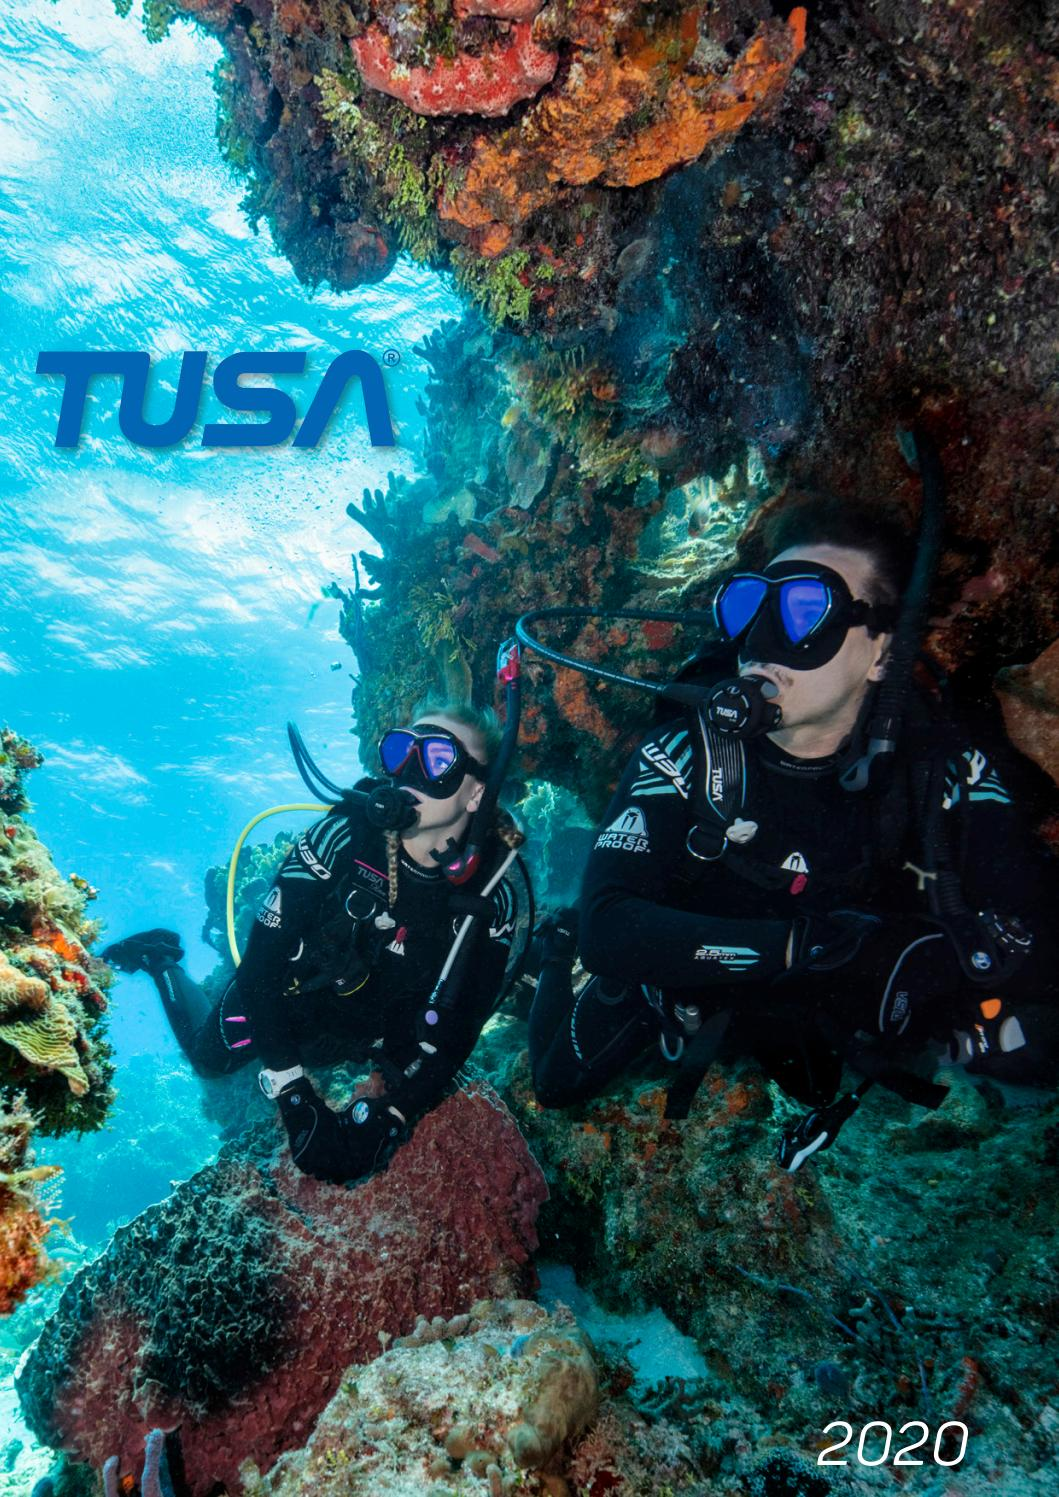 TUSA ANTI FOG FILM SNORKELLING MASKS REUSABLE FOR ANY 1 WINDOW SCUBA DIVING